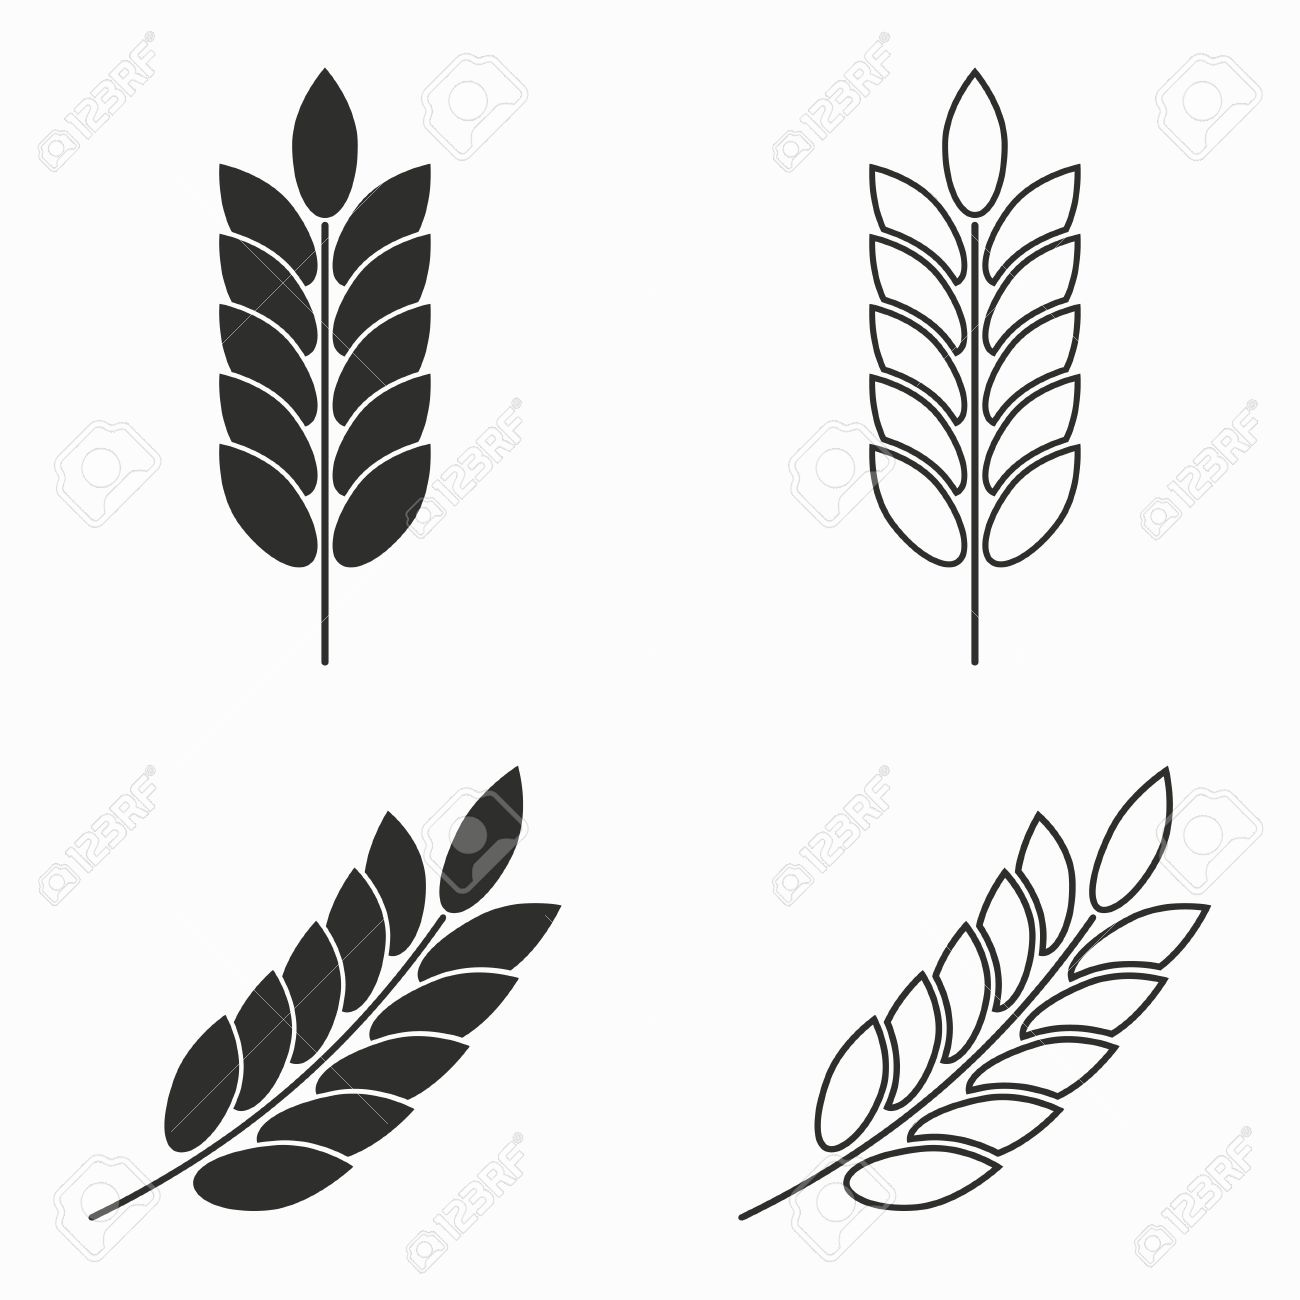 barley vector icons set black illustration isolated on white rh 123rf com barley vector art barley vector png